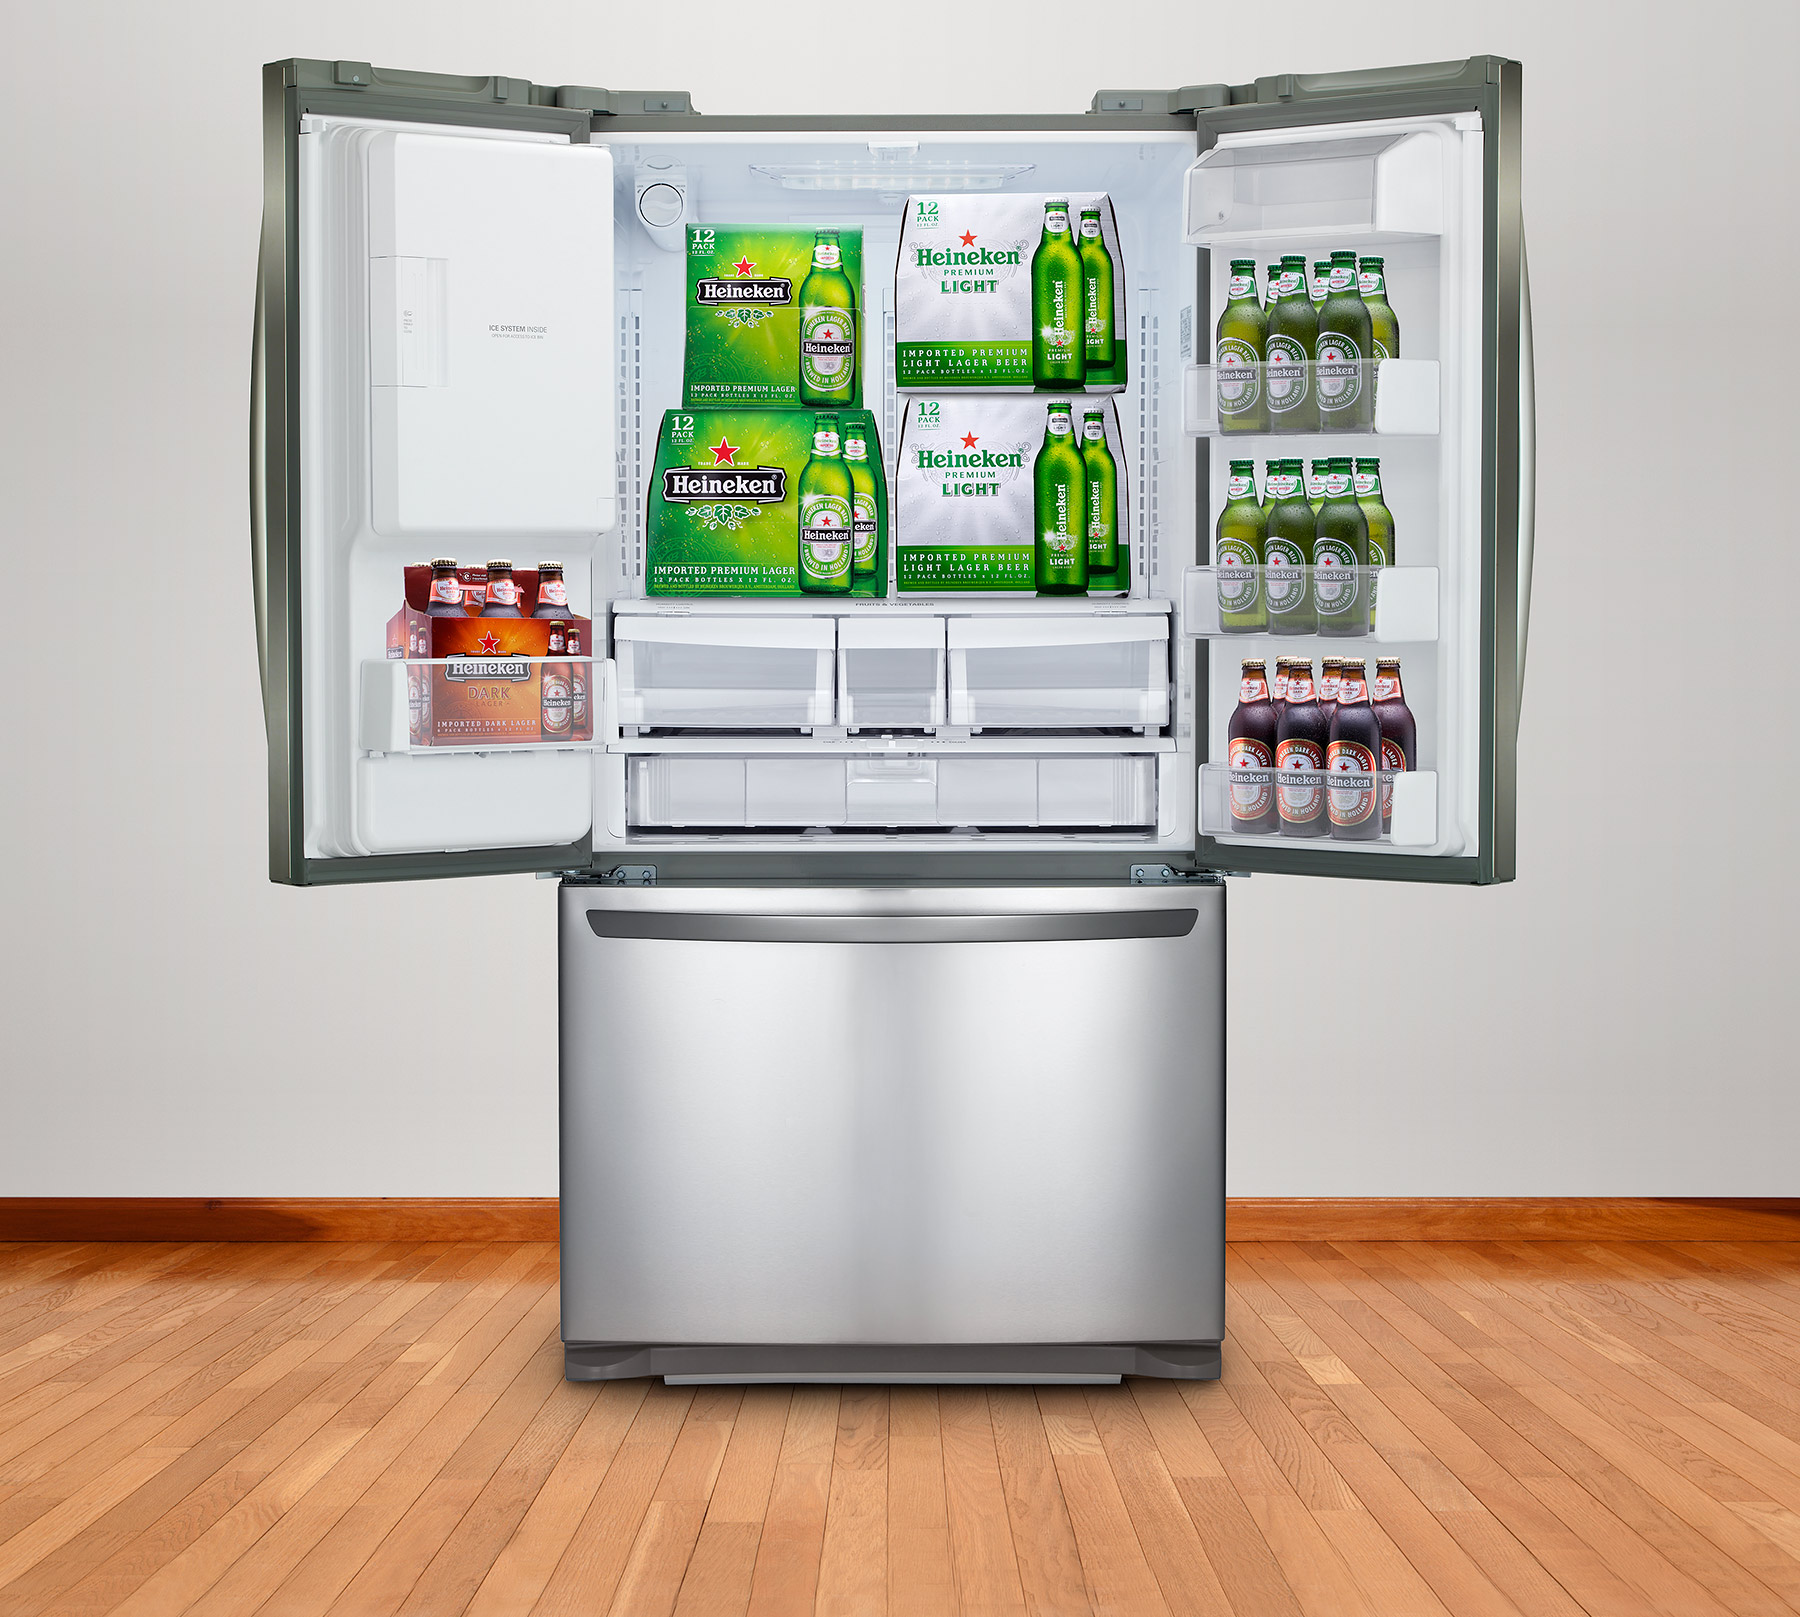 CGI Product photography of Refrigerator | Dovis Bird Agency Reps